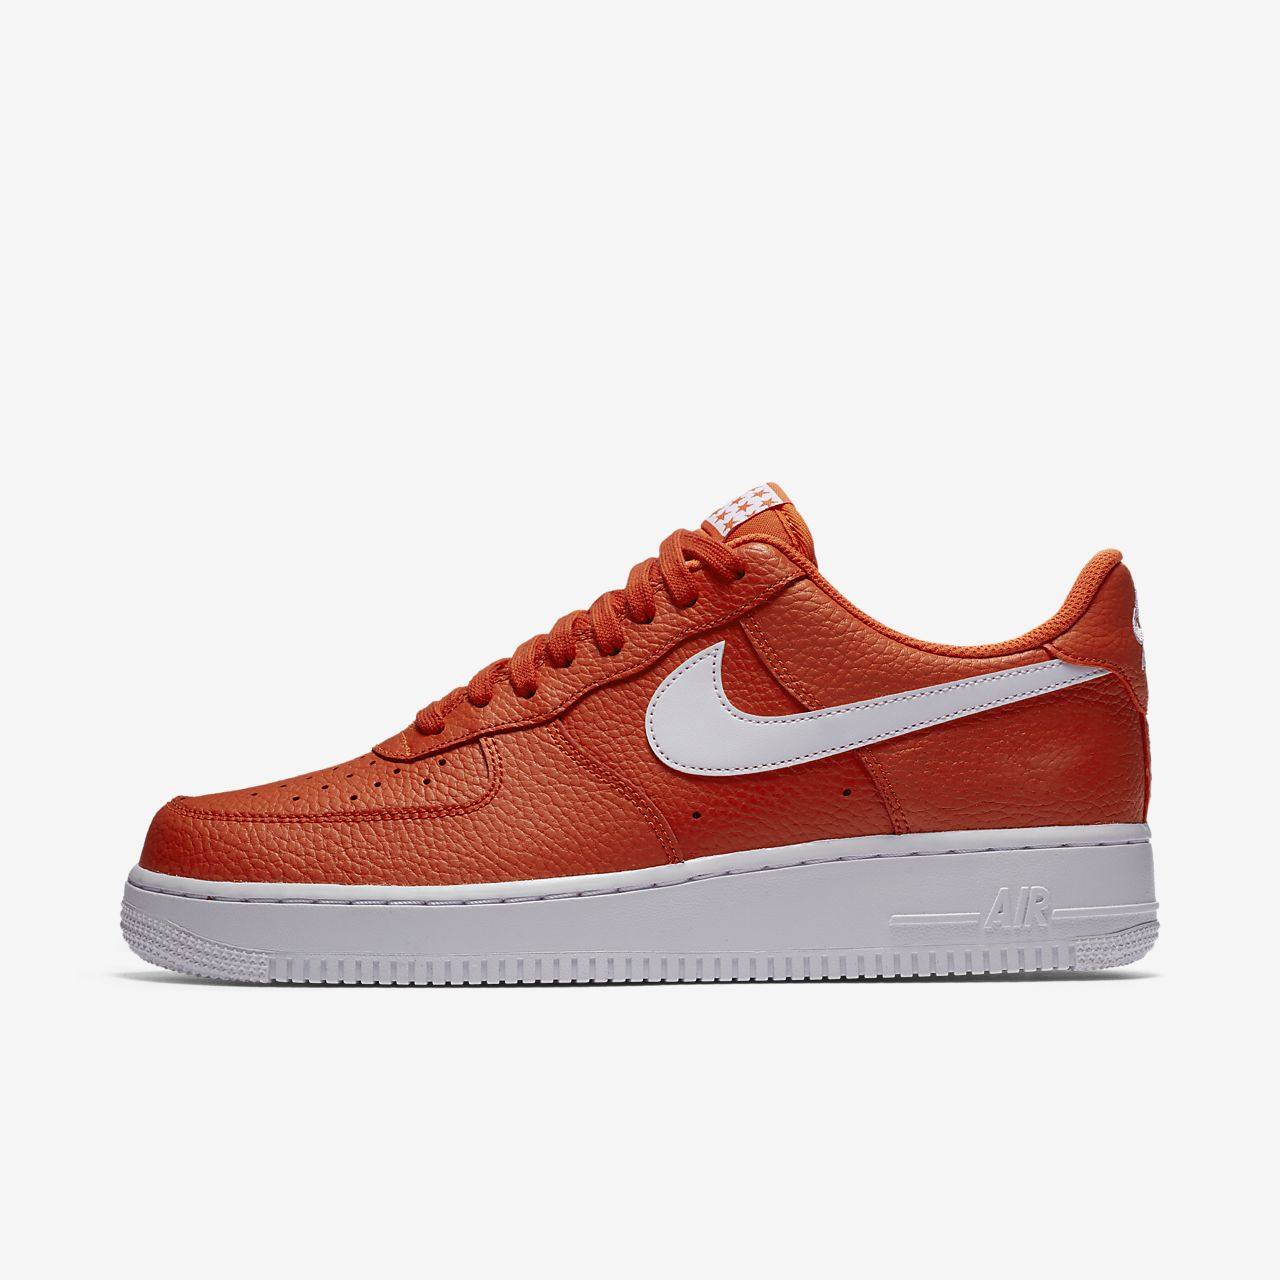 wholesale dealer 858c1 df23e ... Calzado para hombre Nike Air Force 1 07